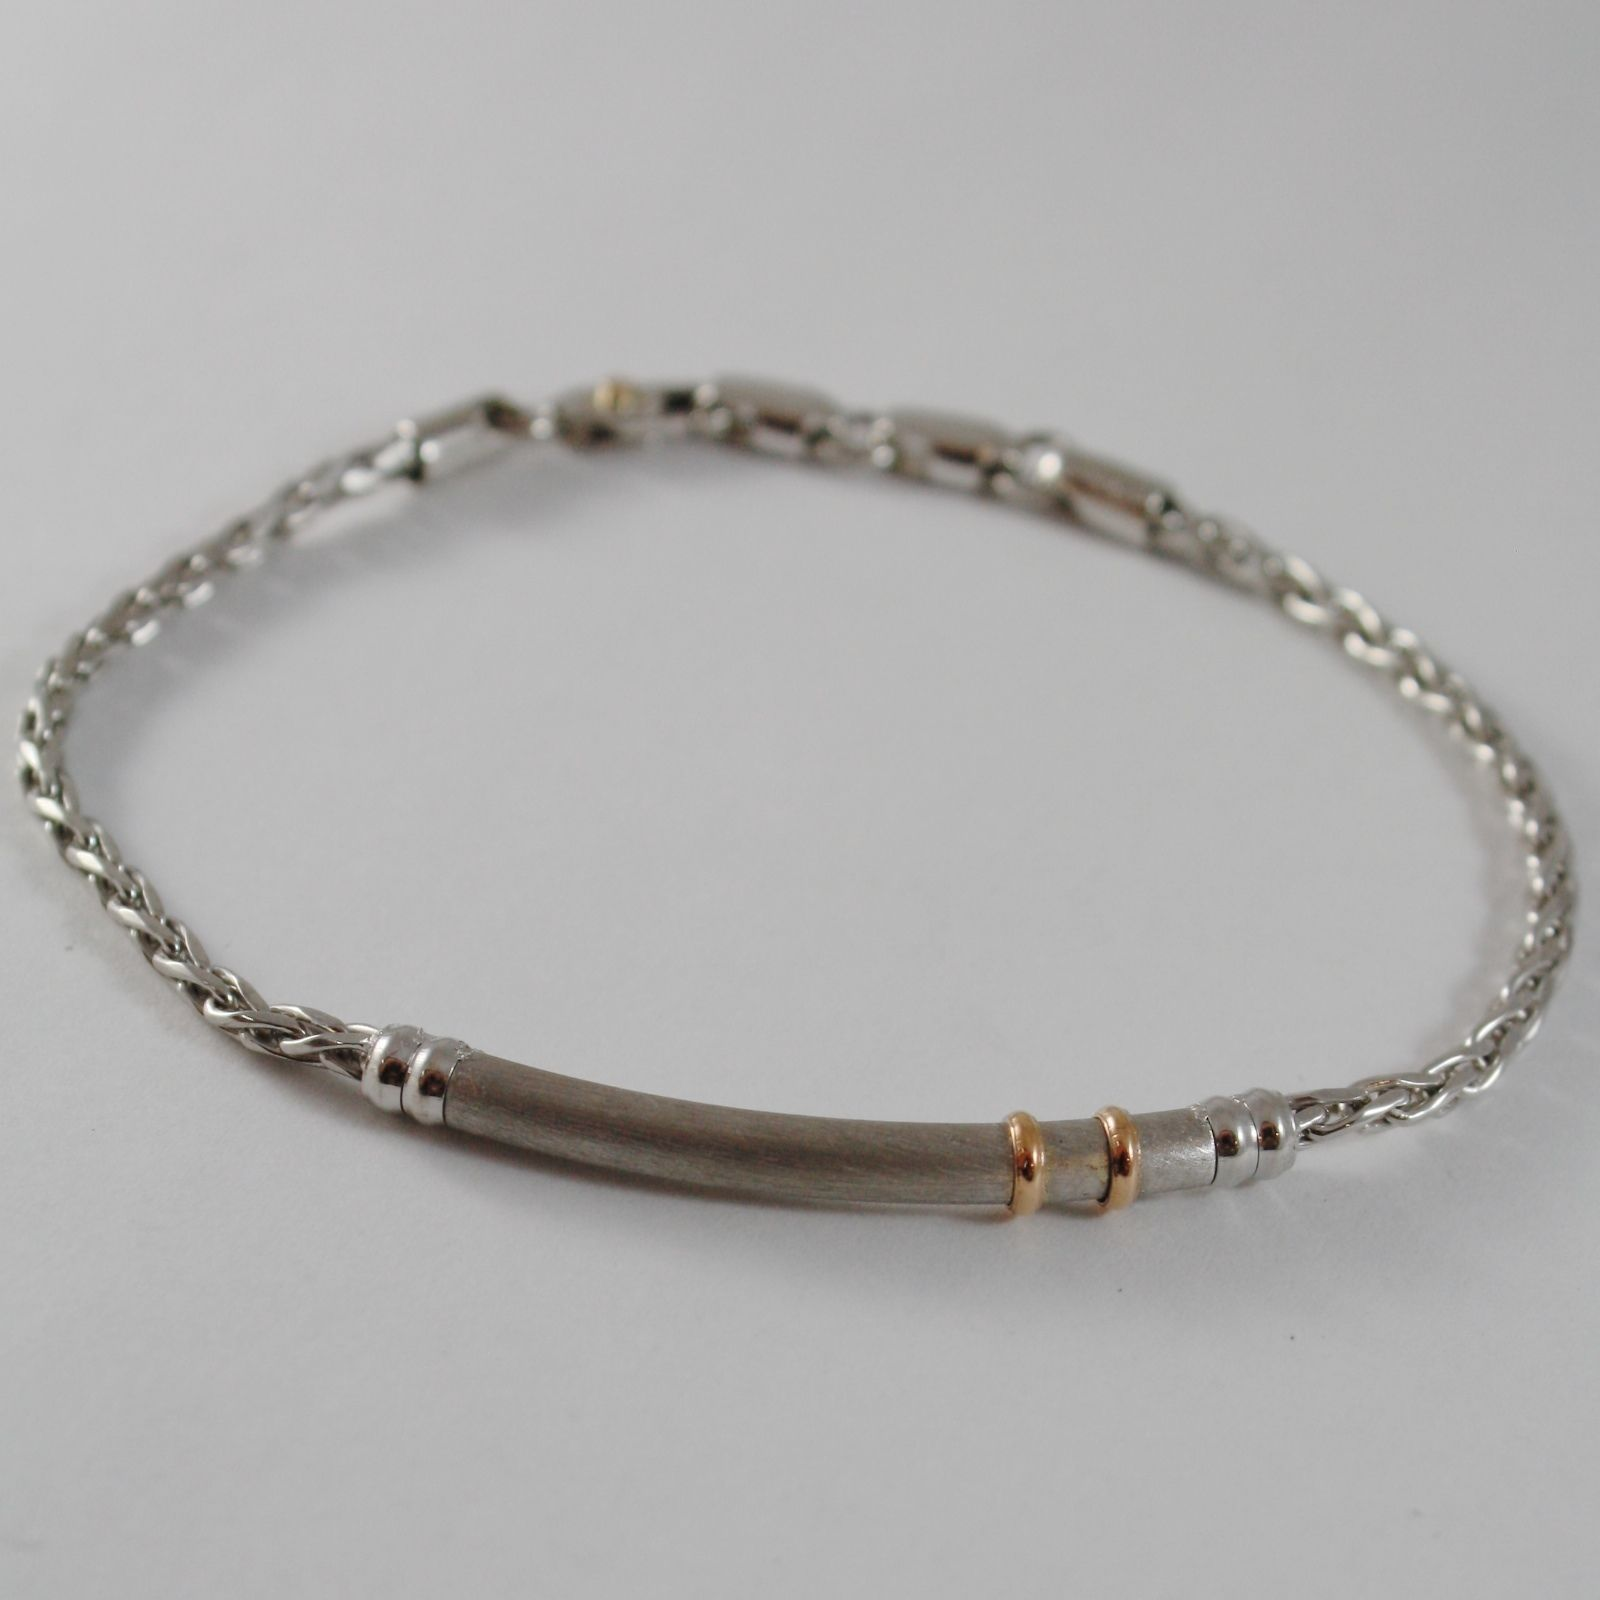 ZANCAN BRACELET, SATIN PLATE, 18k ROSE GOLD, 925 STERLING SILVER MADE IN ITALY